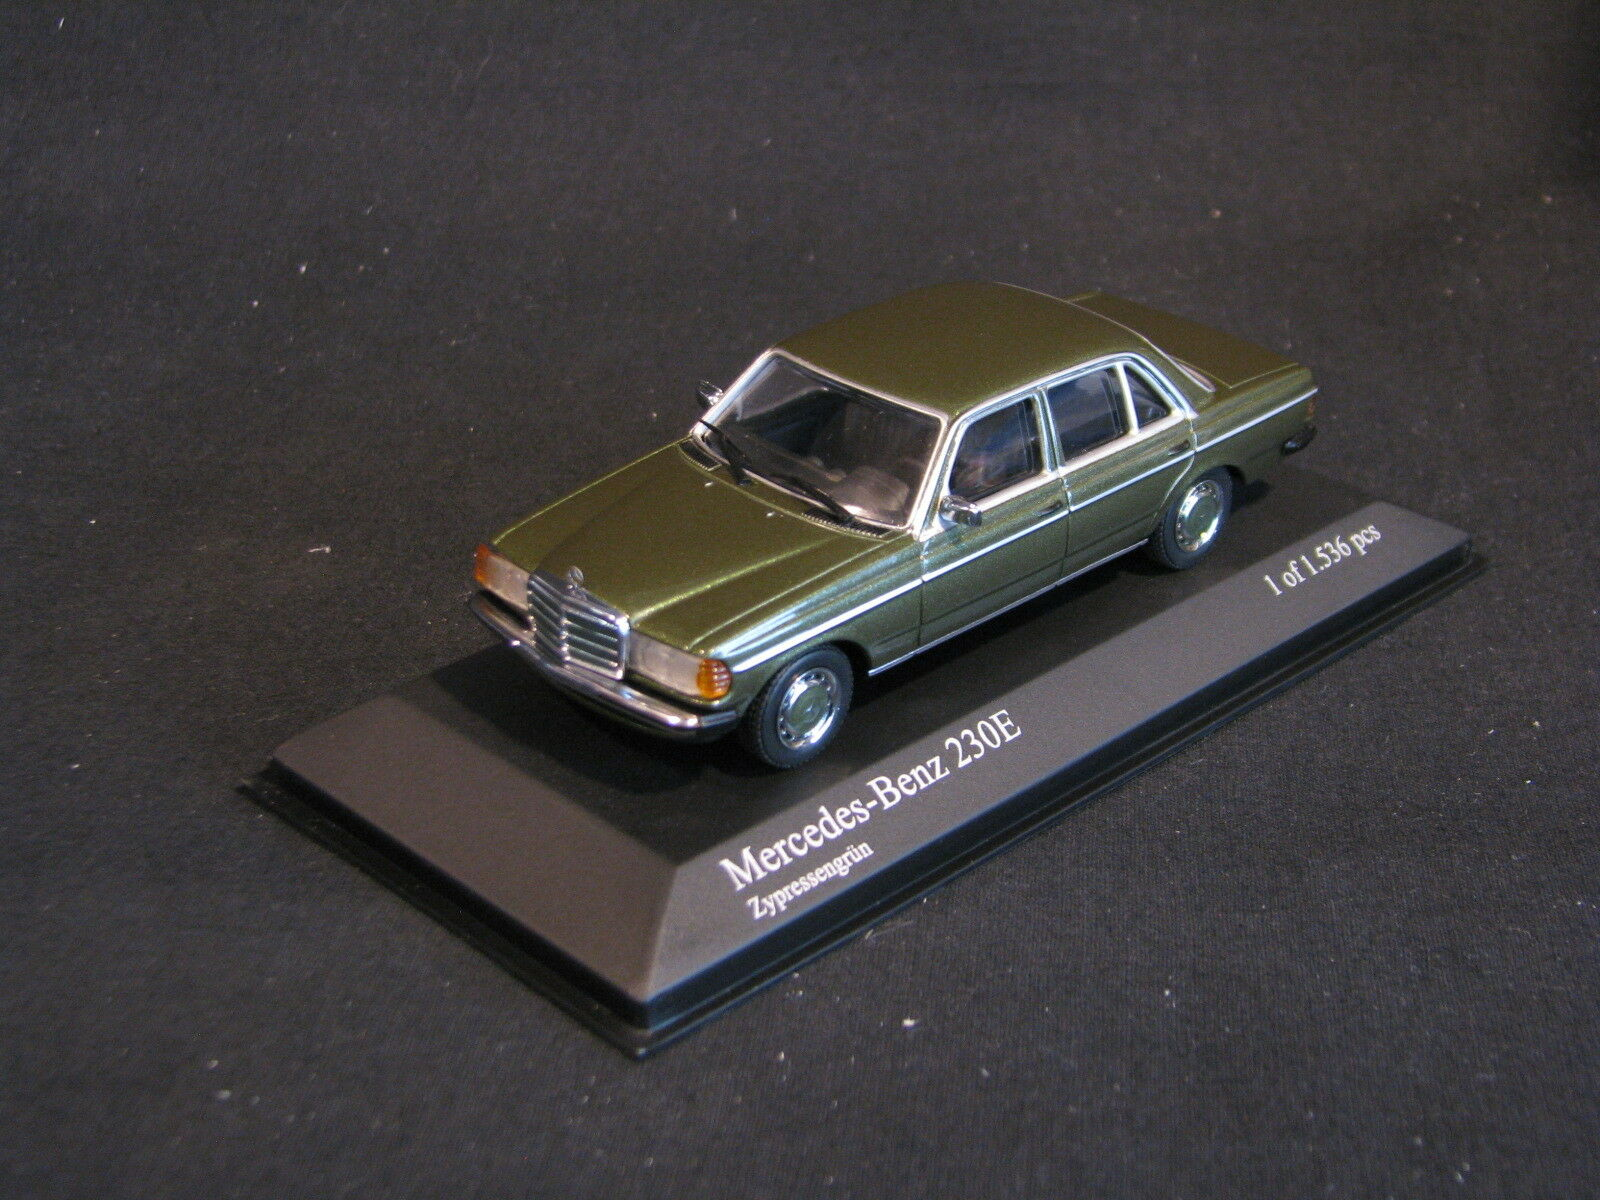 Minichamps Mercedes-Benz 230 E 1976 1 43 Dark Green Metallic (JS)